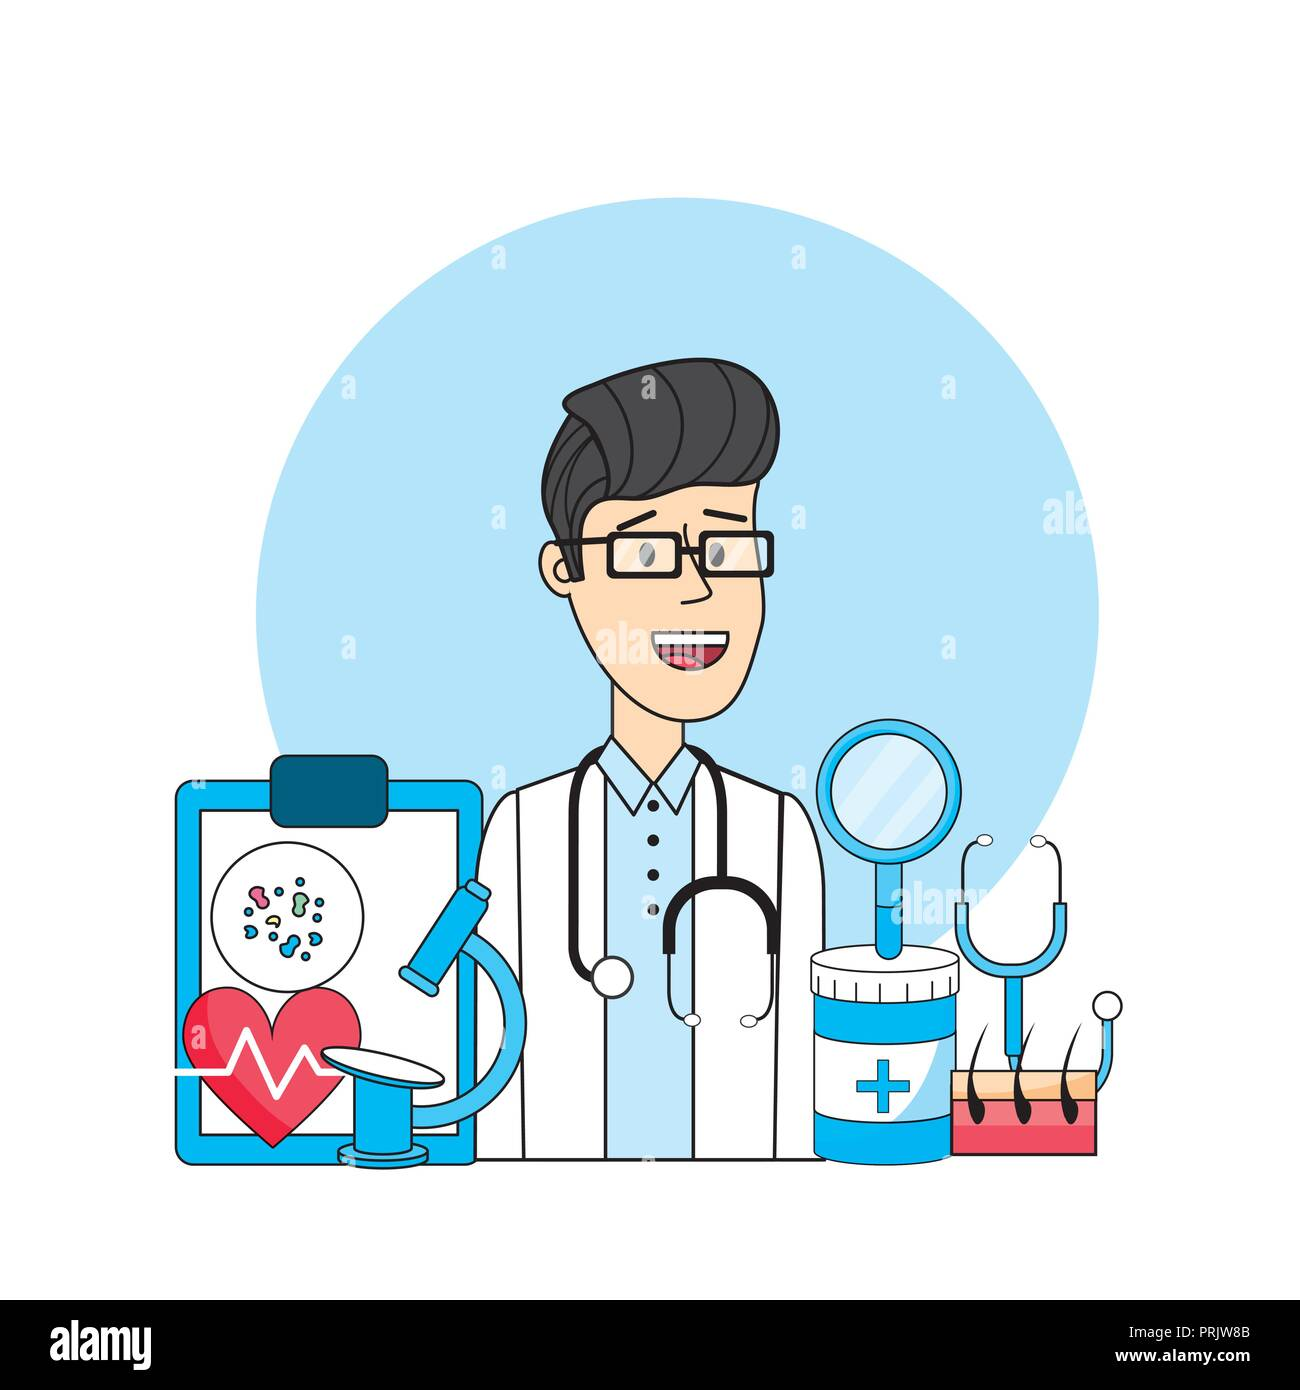 doctor with medical diagnosis treatment prevention - Stock Image